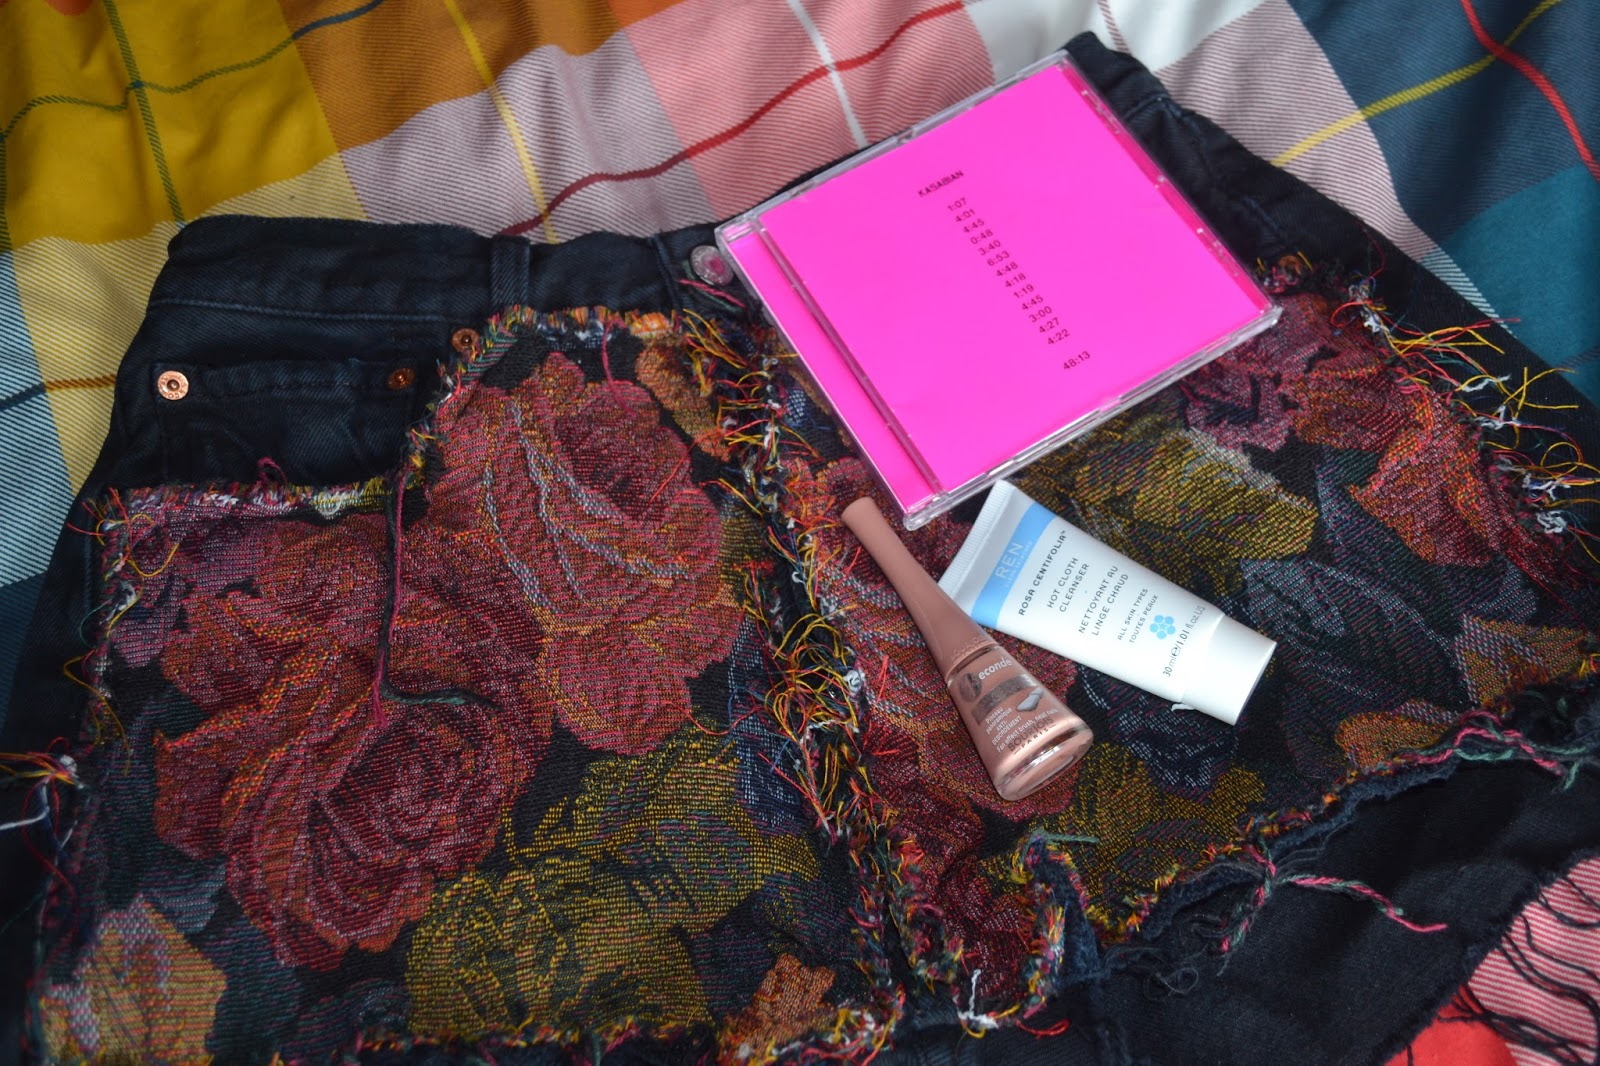 ASOS tapestry shorts, REN cleanser, Bourjois nail varnish and Kasabian's 48:13